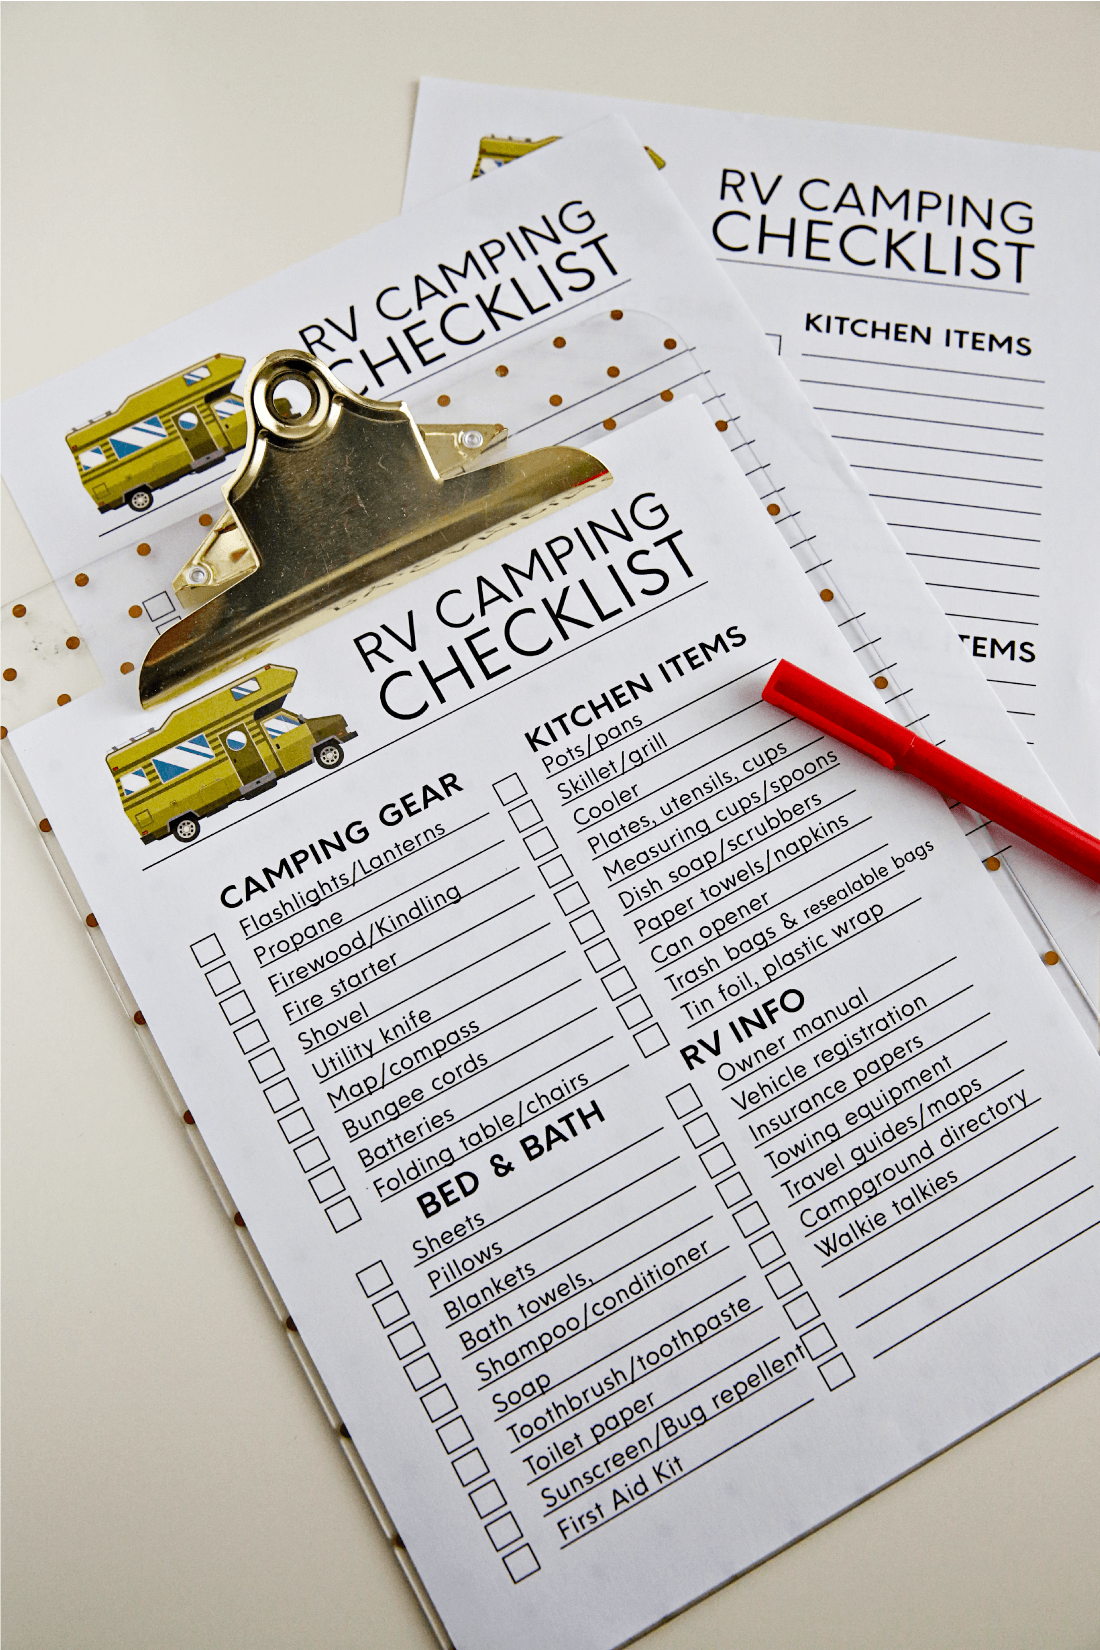 photograph regarding Rv Checklist Printable called Printable RV Checklists